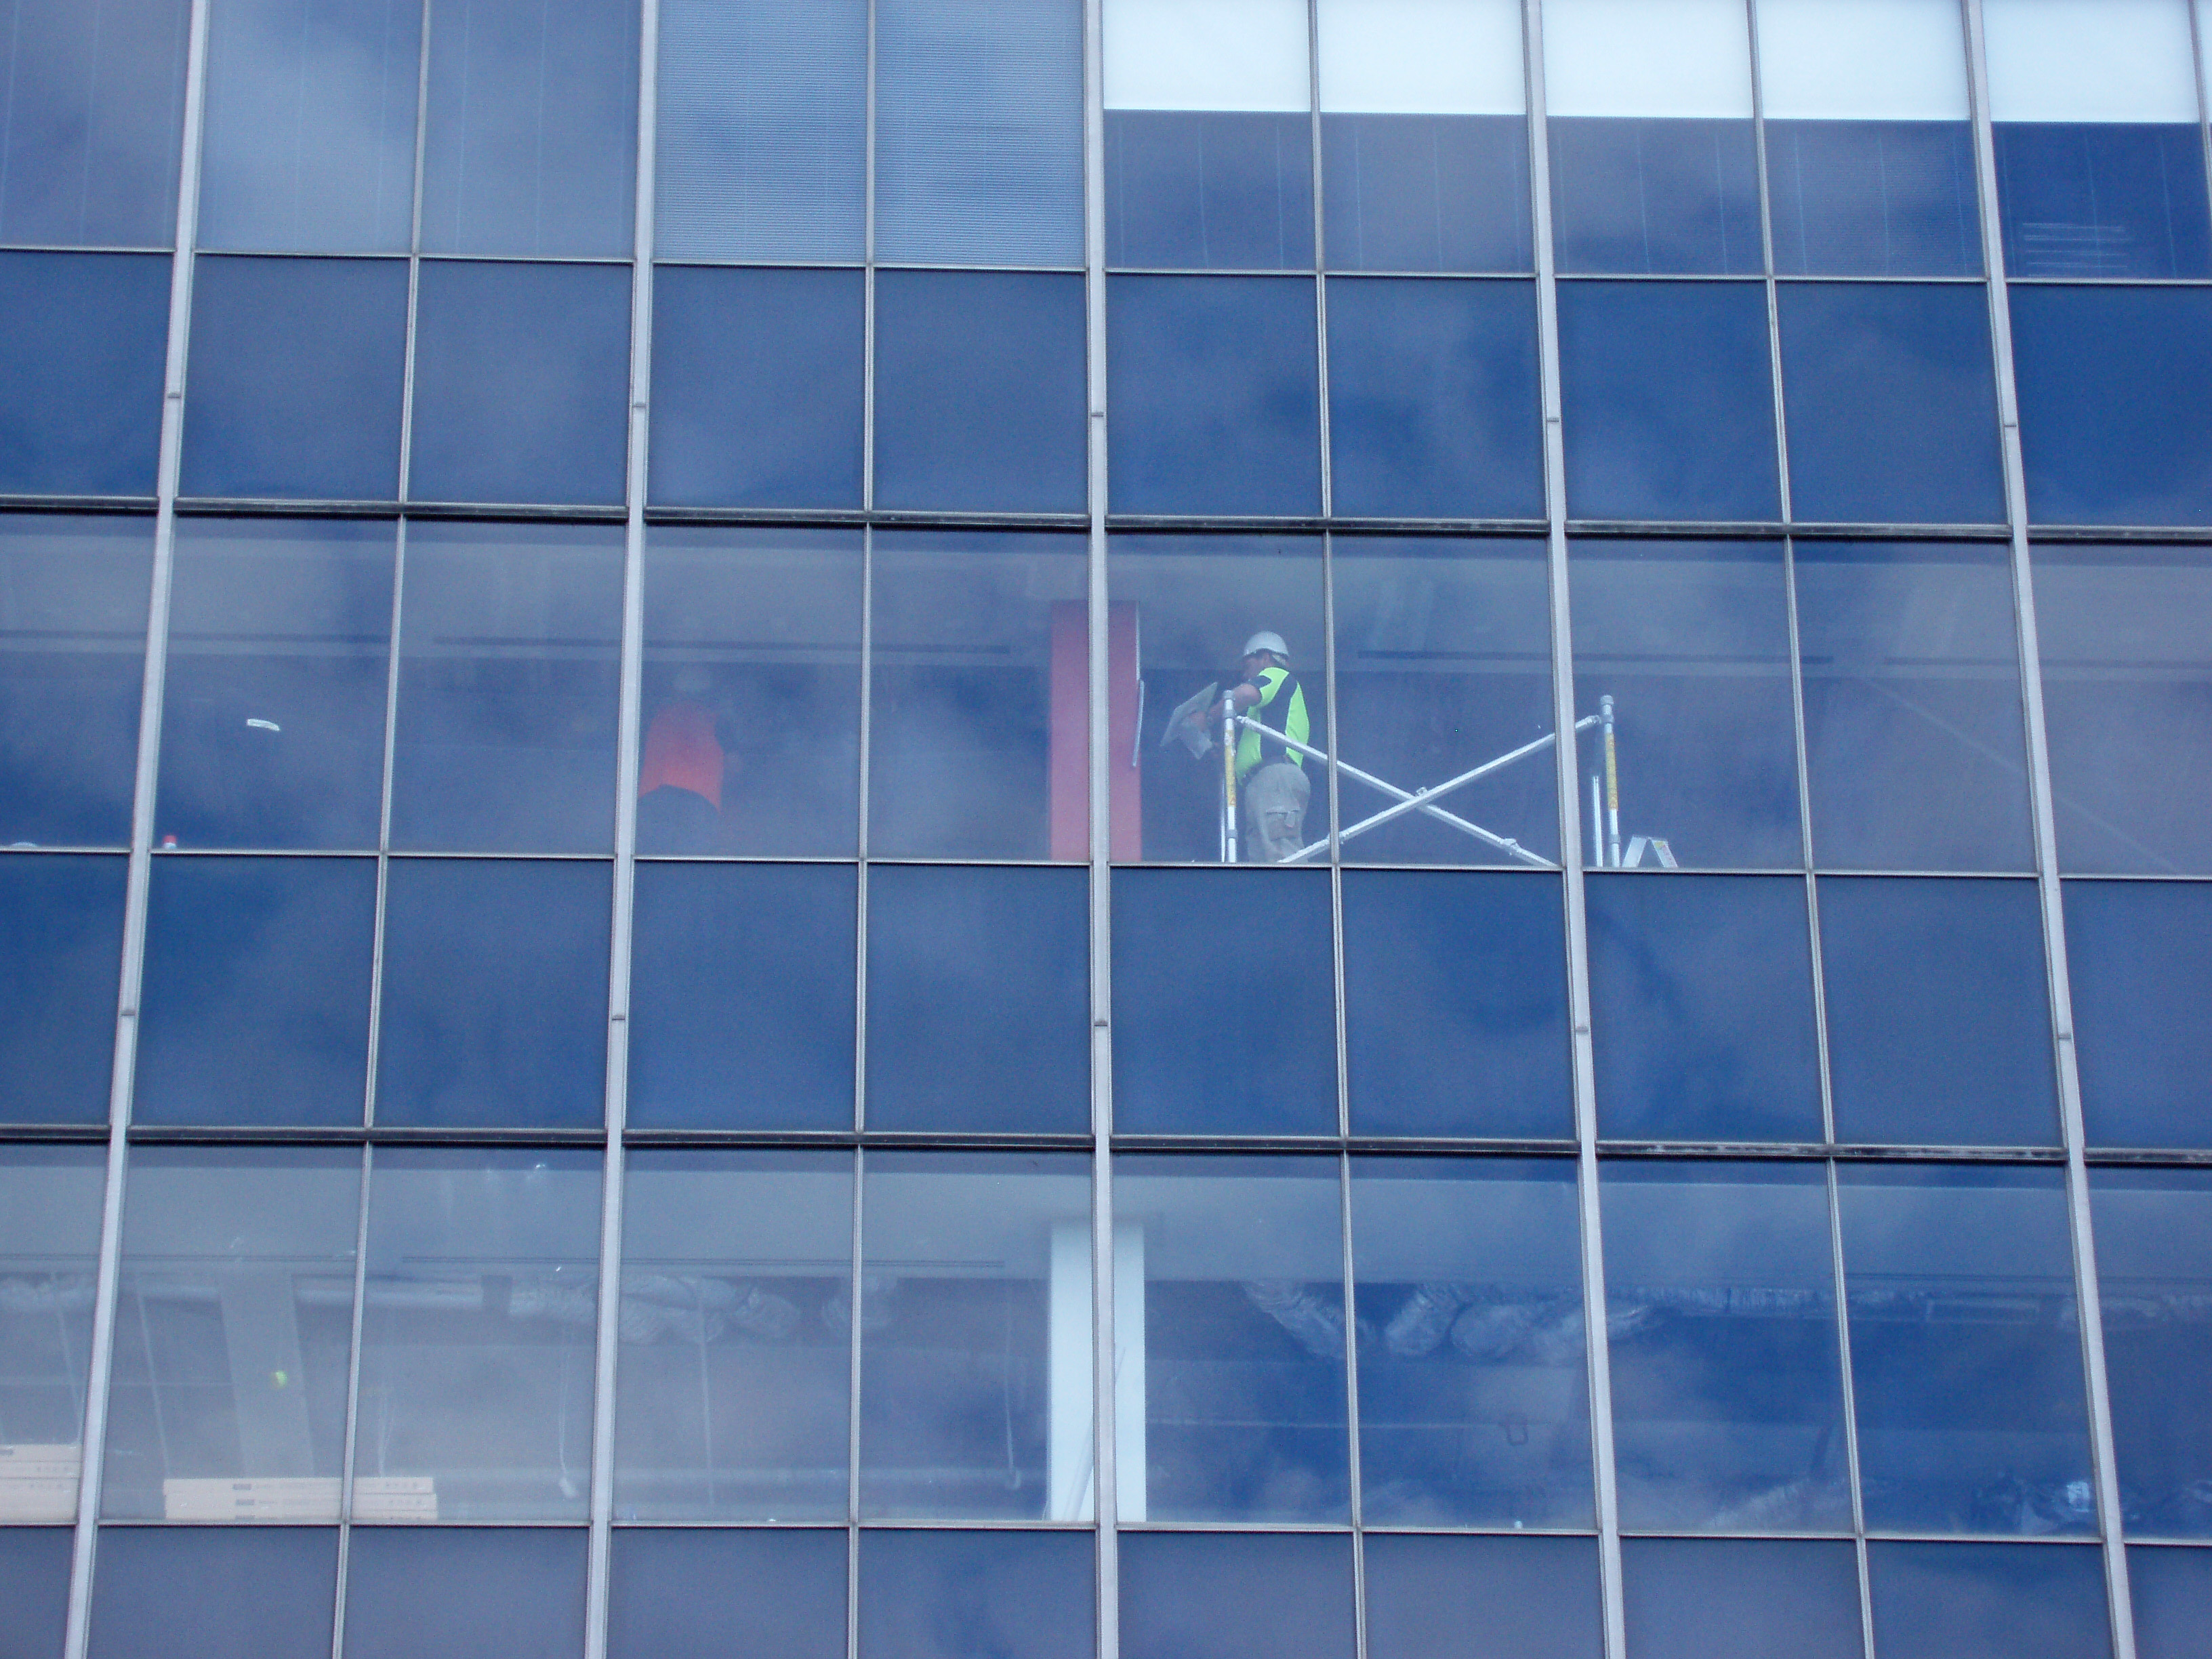 workers behind glass, modern office building redecoration